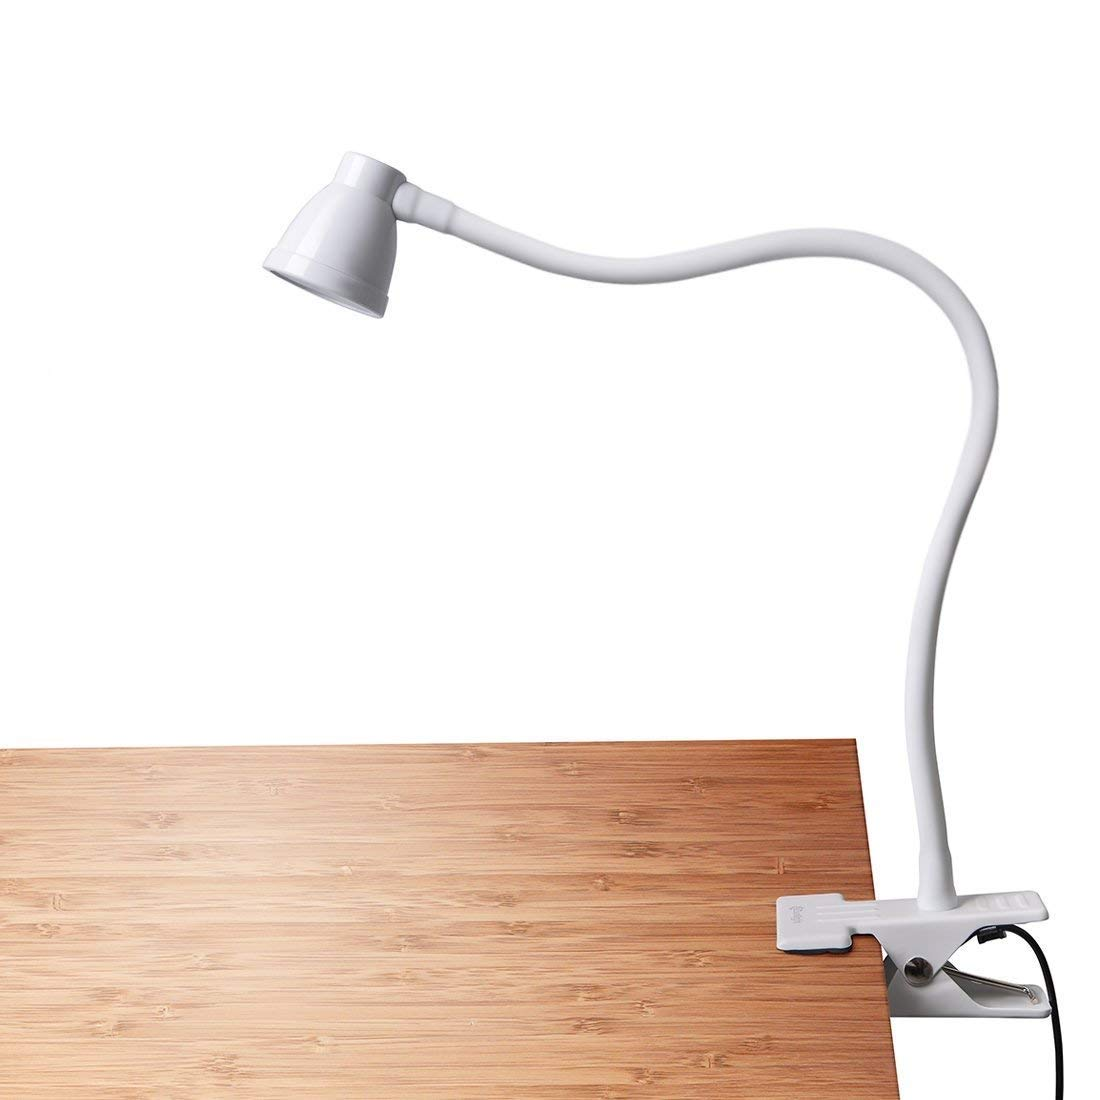 CeSunlight Clip on Reading Light, Clamp Lamp for Desk, 3000-6500K Adjustable Color Temperature, 6 Illumination Modes, 10 Led Beads, AC Adapter and USB Cord Included (White) A8-White